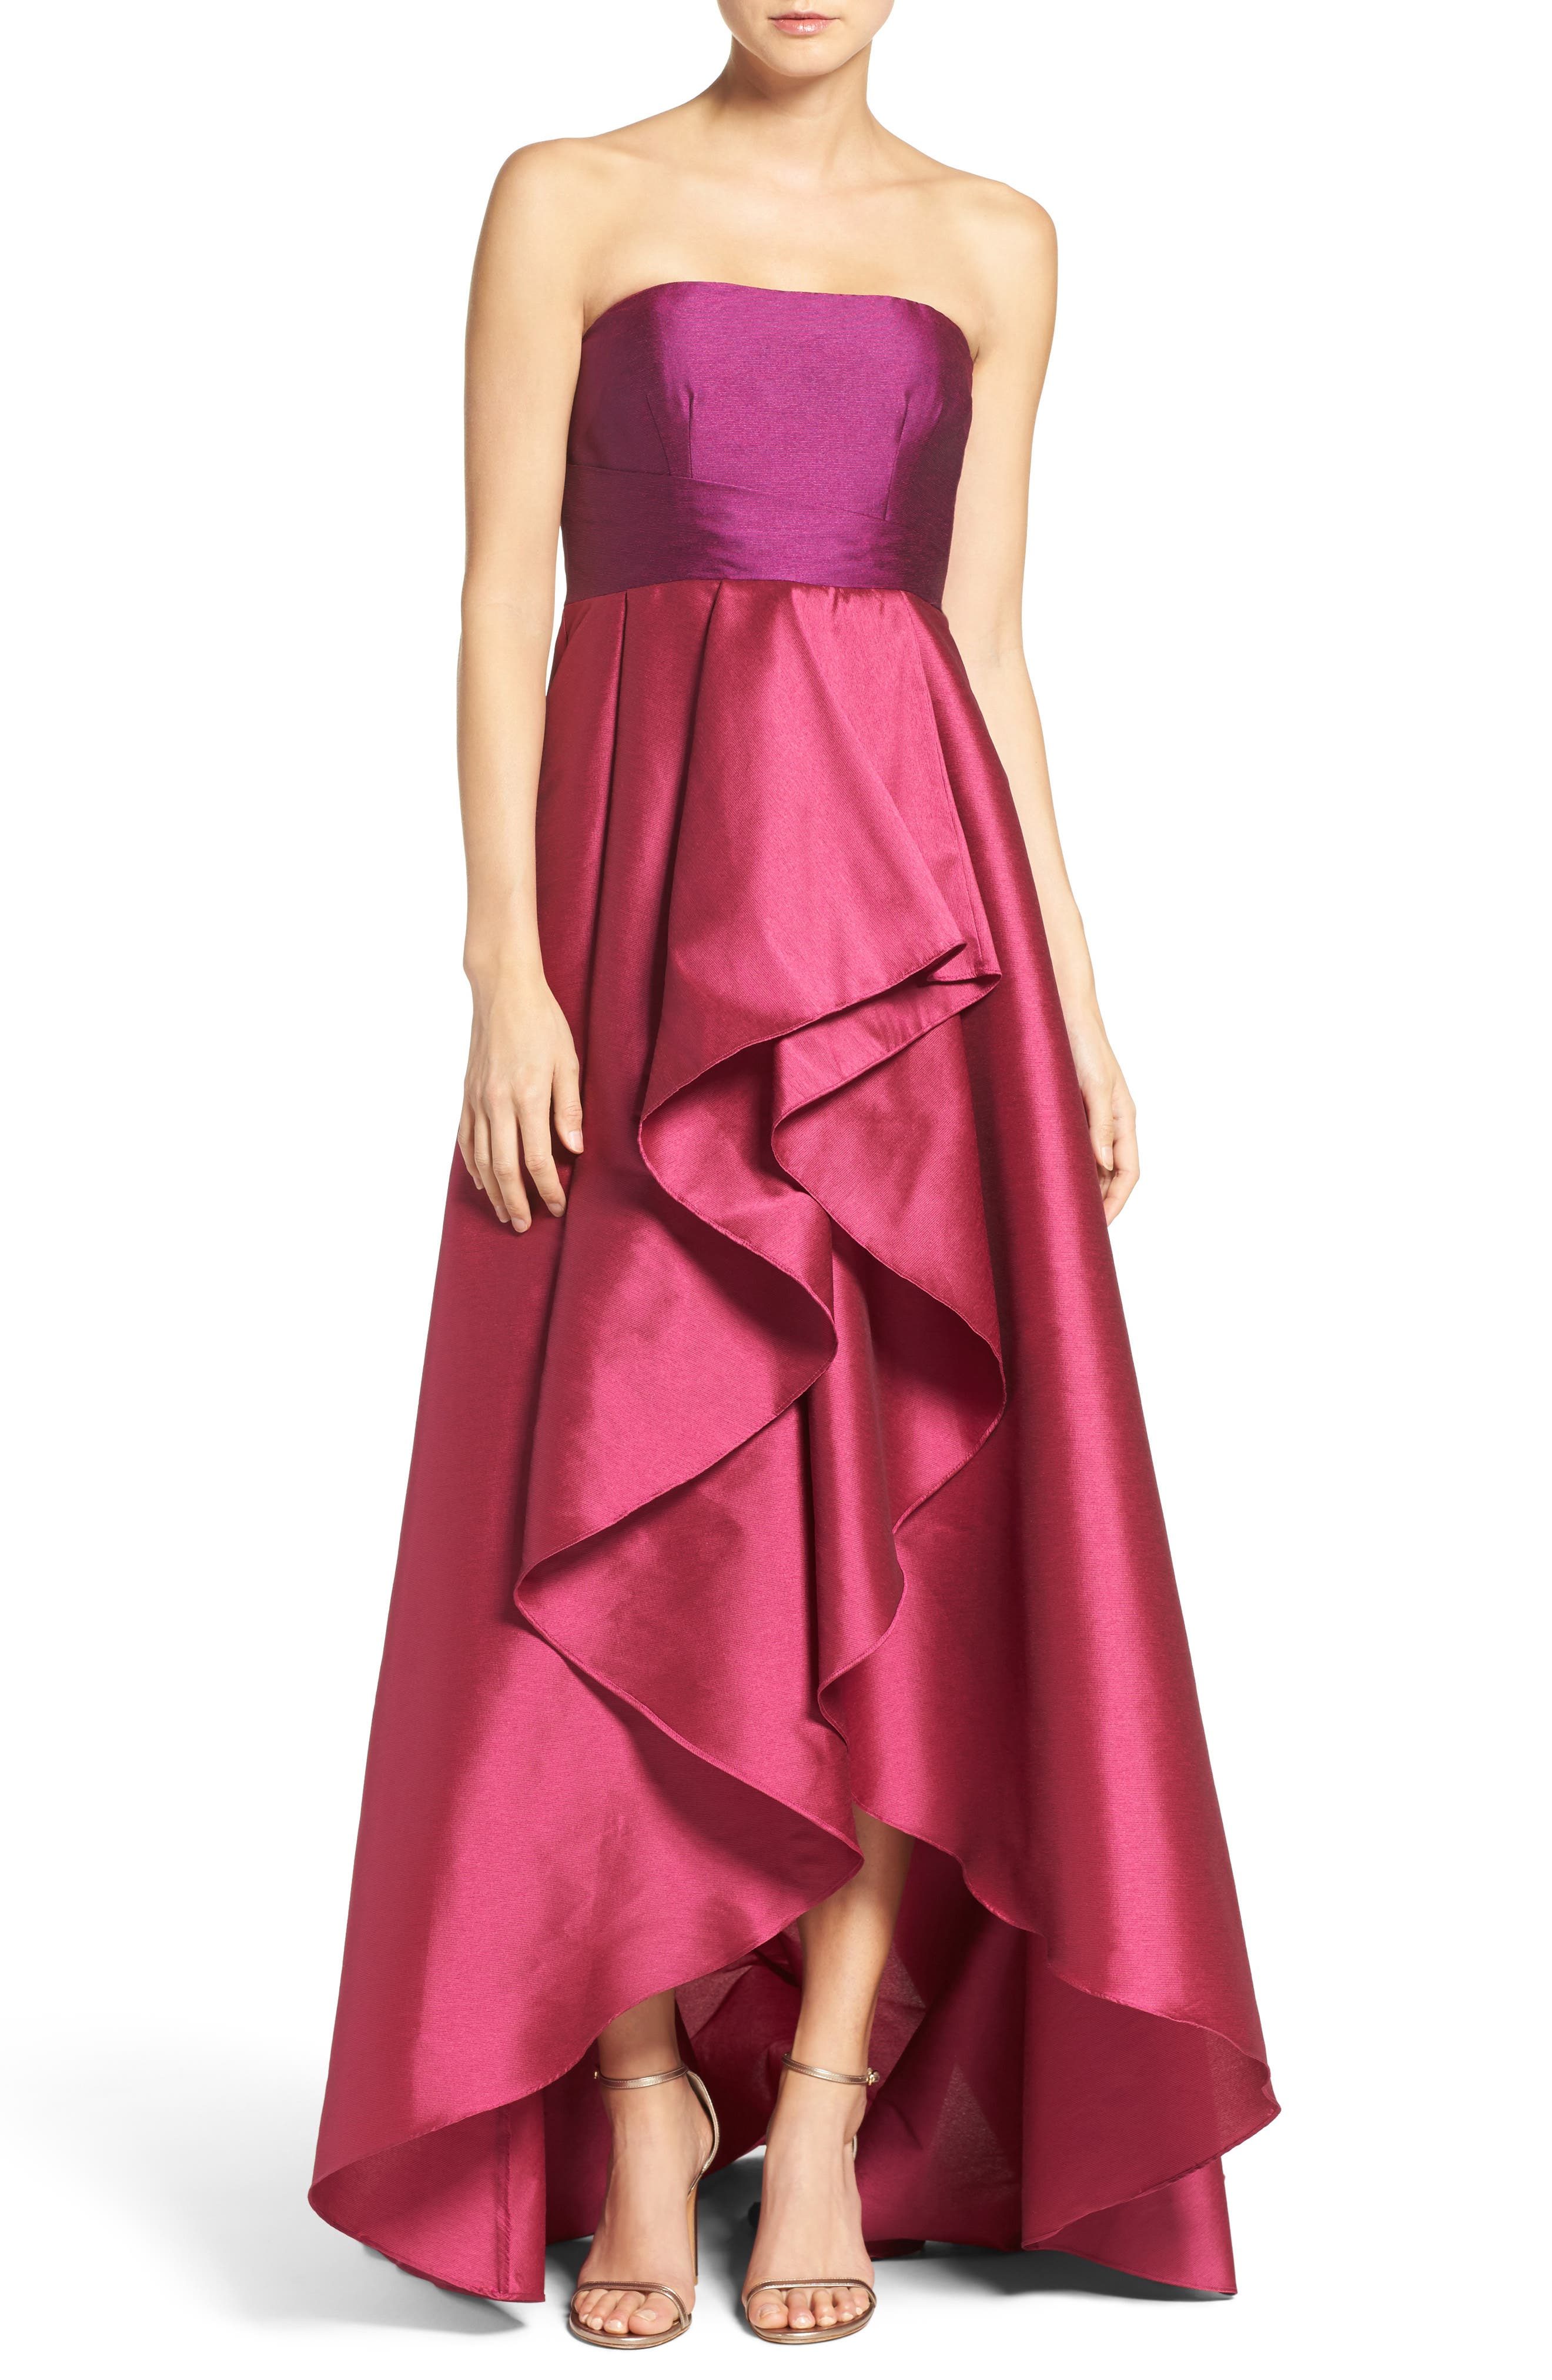 Alternate Image 1 Selected - Adrianna Papell Colorblock Strapless Gown